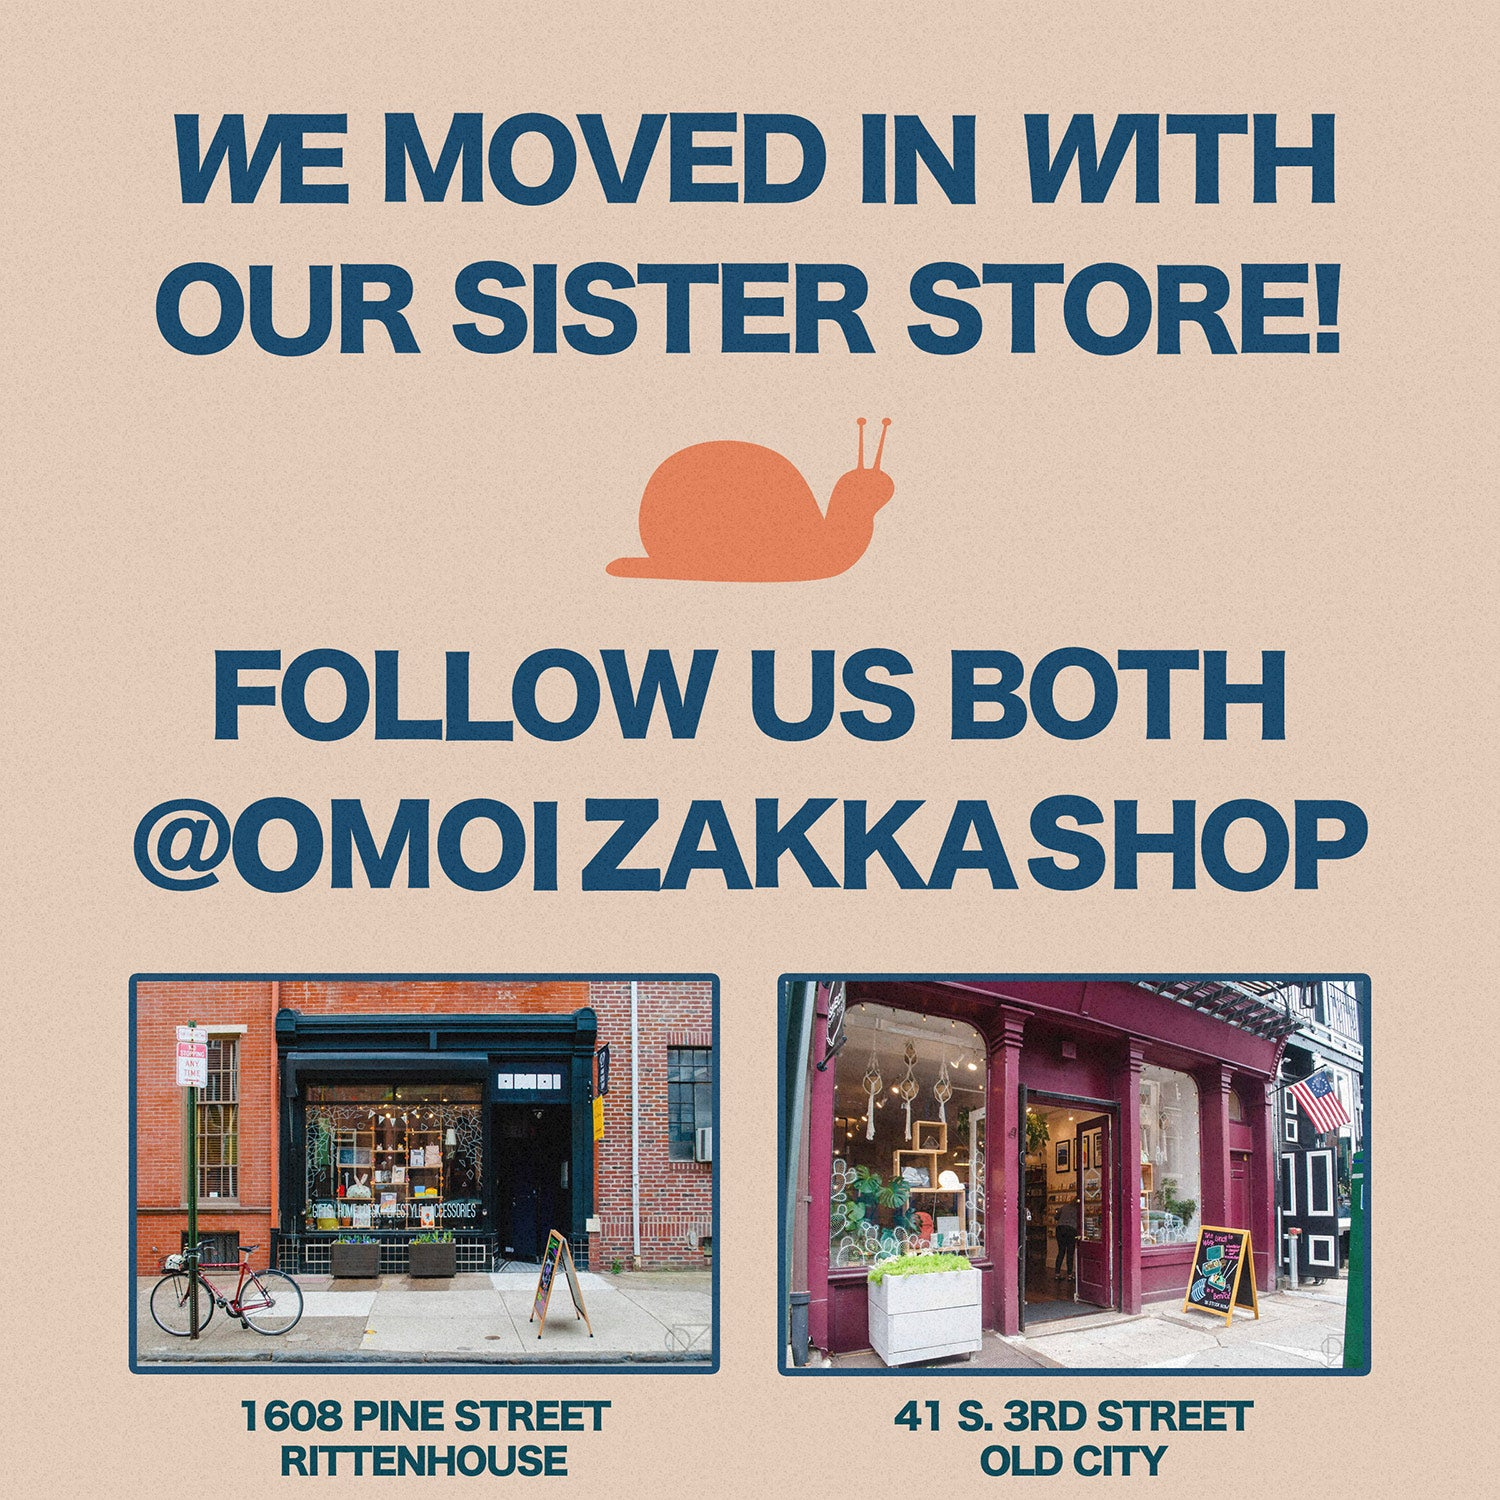 We had been running two separate Instagram accounts for both stores, which became too much work!